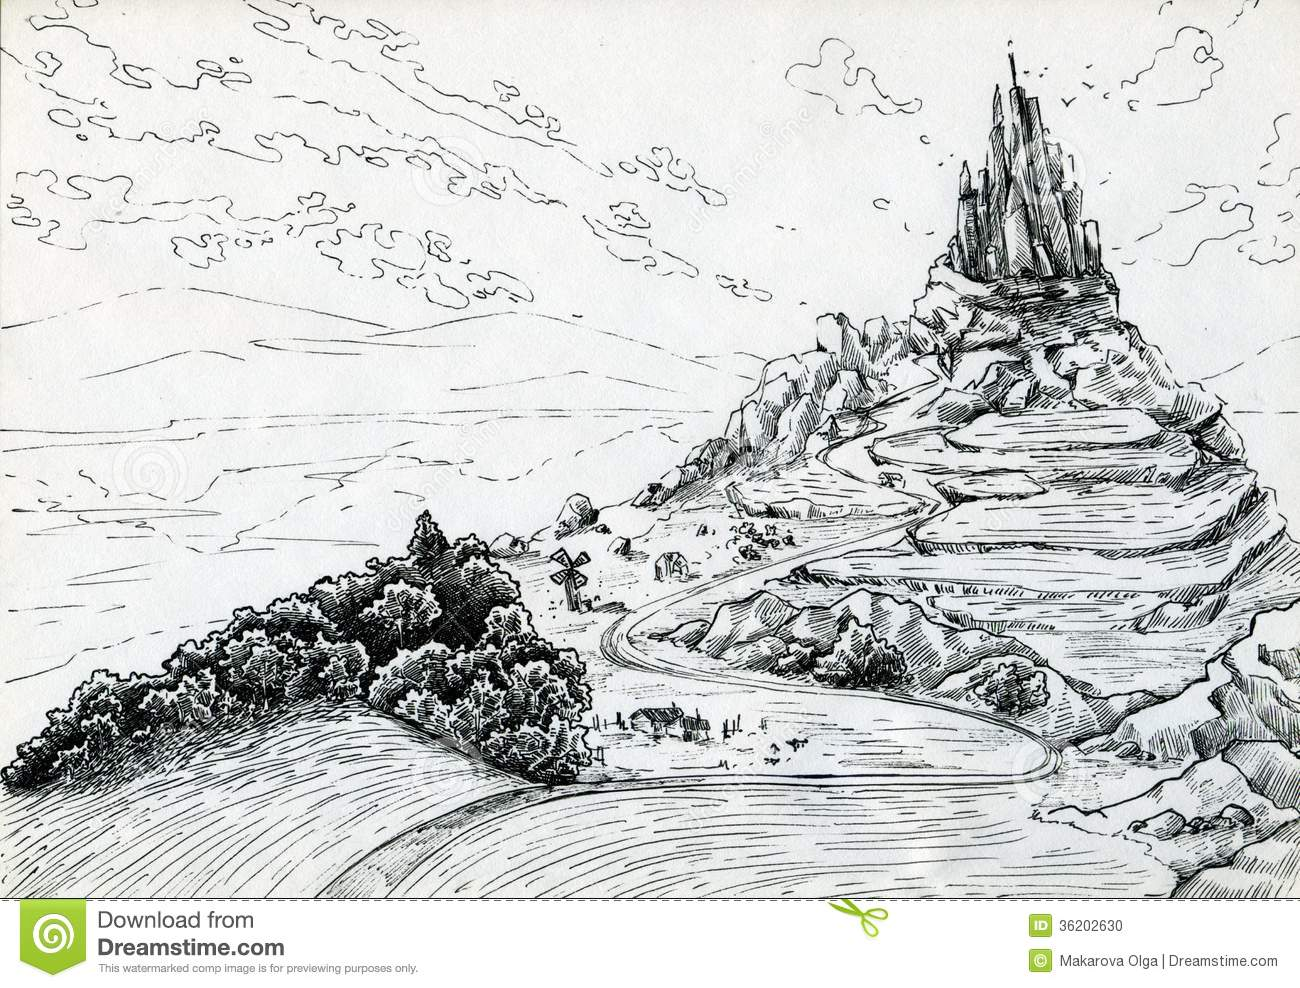 How To Draw Fantasy Landscape Art